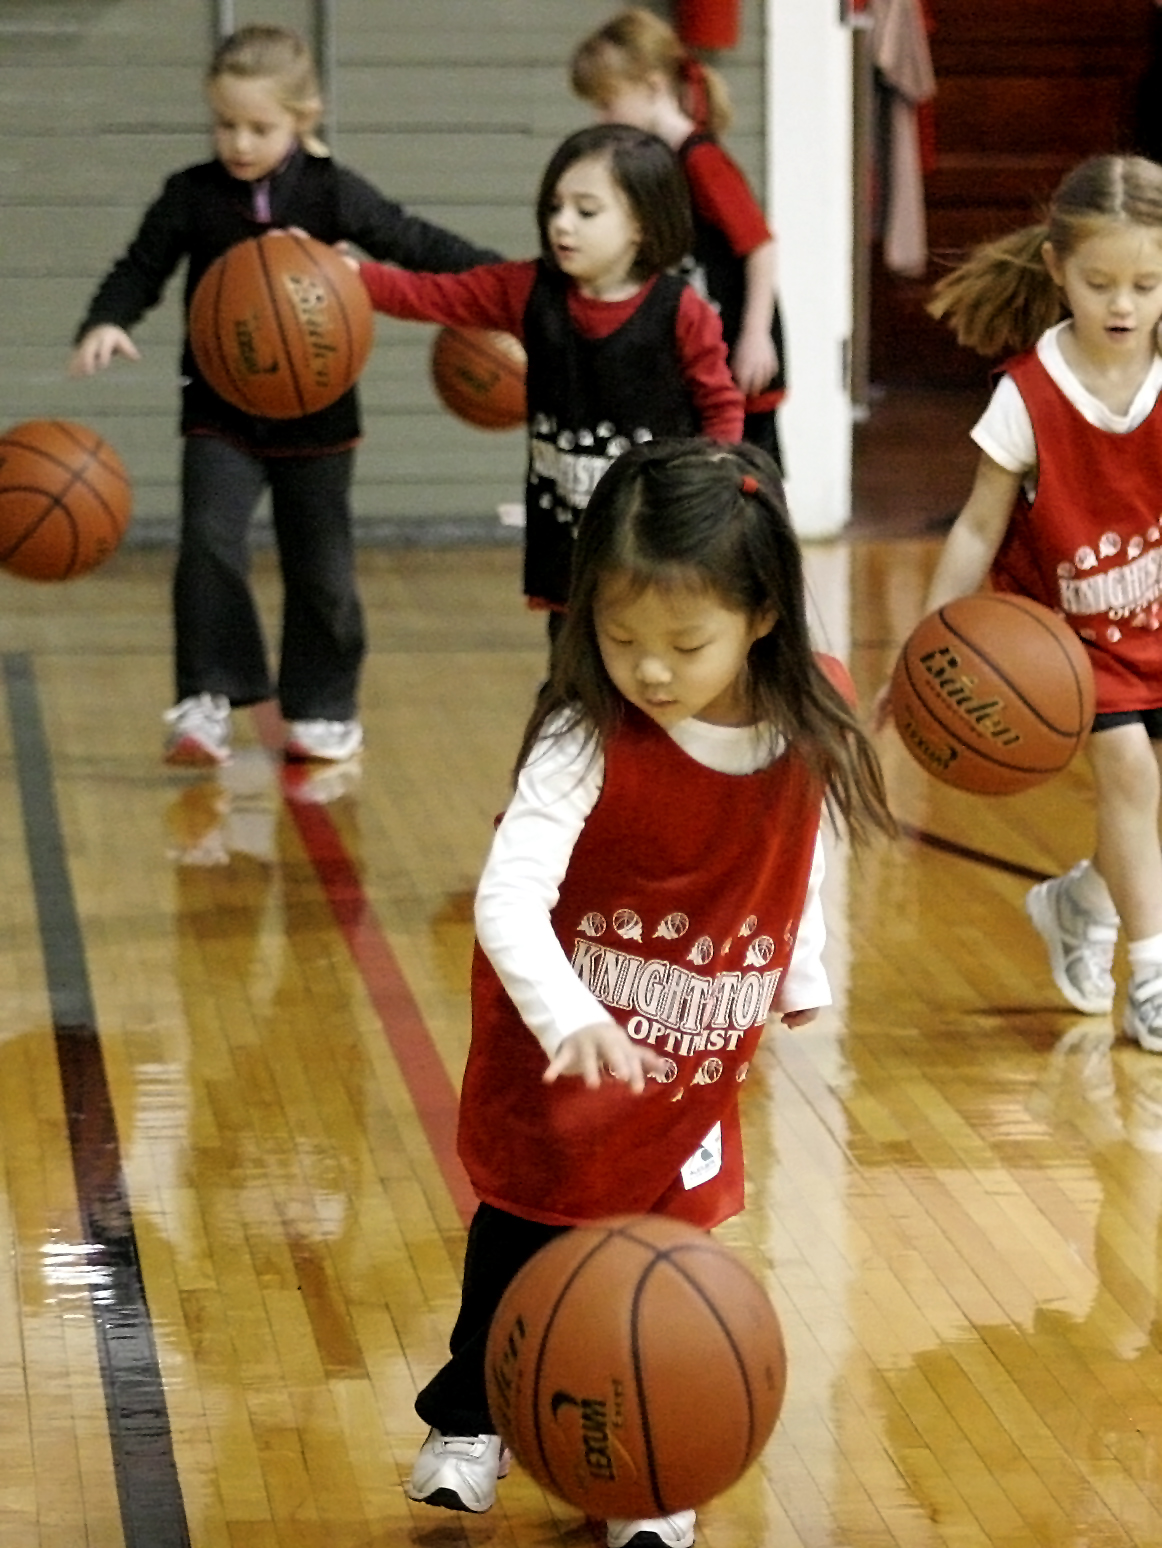 Little kids learning the fundamentals of basketball just seems so right in a place like the Hoosier Gym. Here, Optimist Club youngsters practice their dribbling skills. Feelings of Hoosier pride swell up for most people when they enter the gym - even for non-Hoosiers!